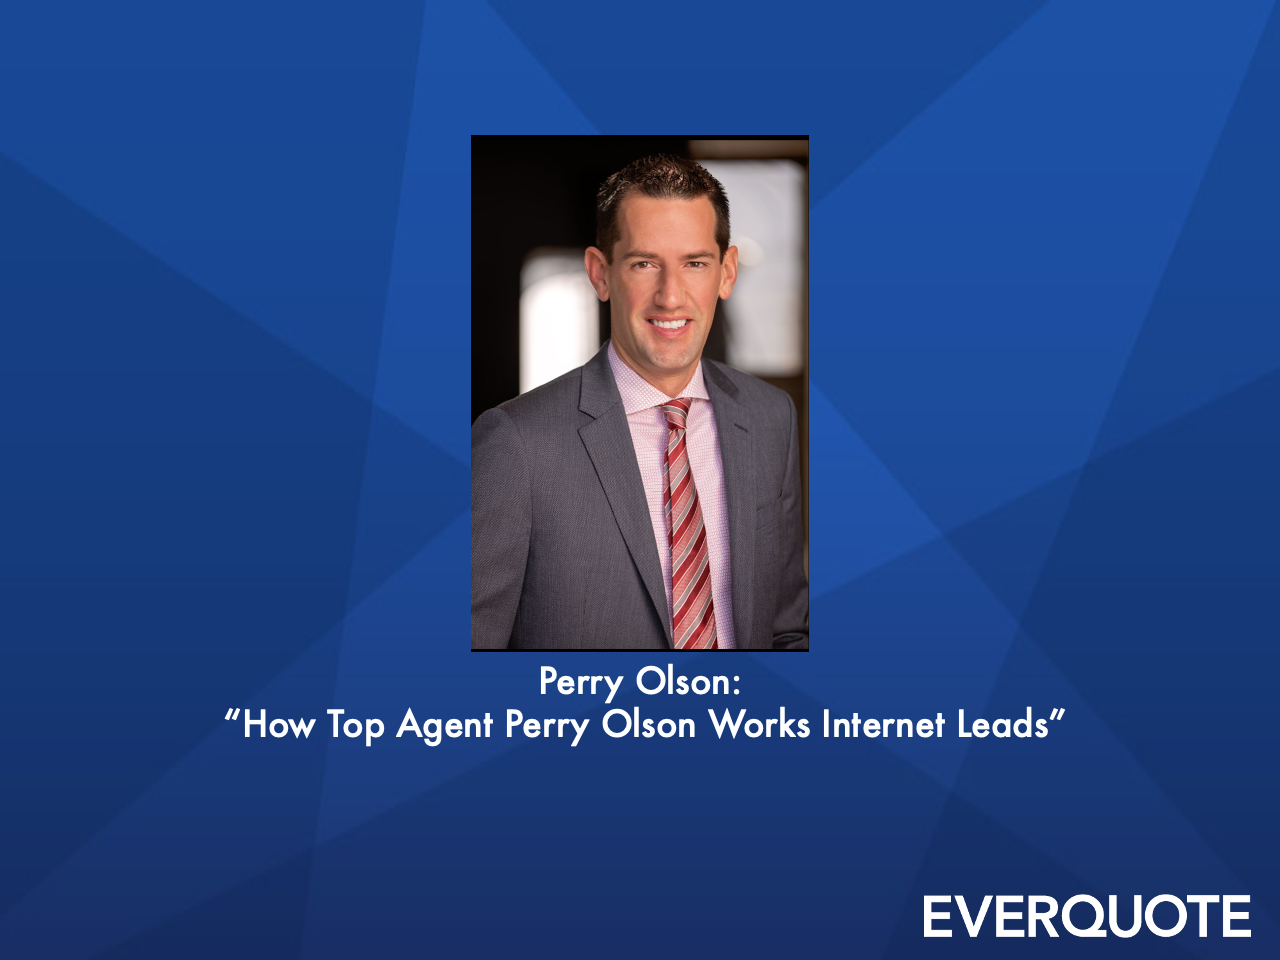 How Top Agent Perry Olson Works Internet Leads with Perry Olson